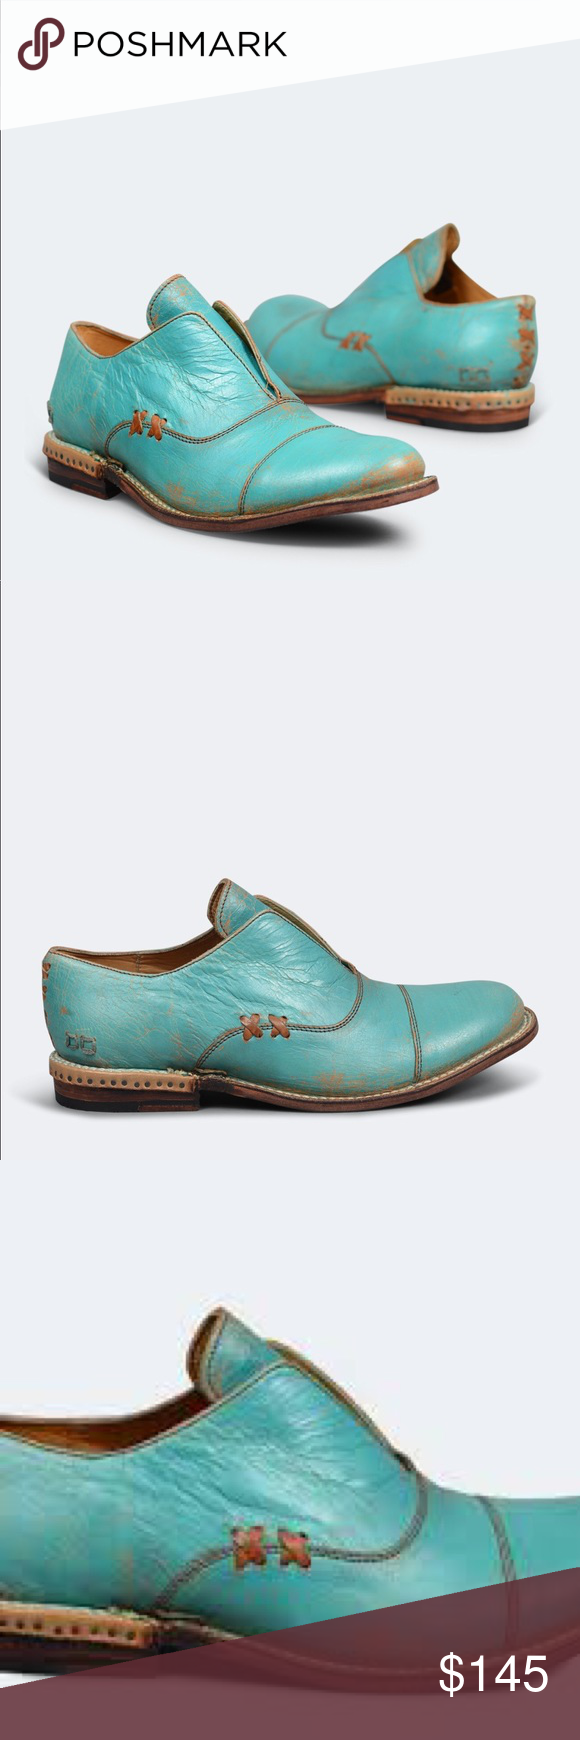 Bed Stu Garden Turquoise Lux Oxford Sold Out Online Amazing Shoes In Beautiful Ocean